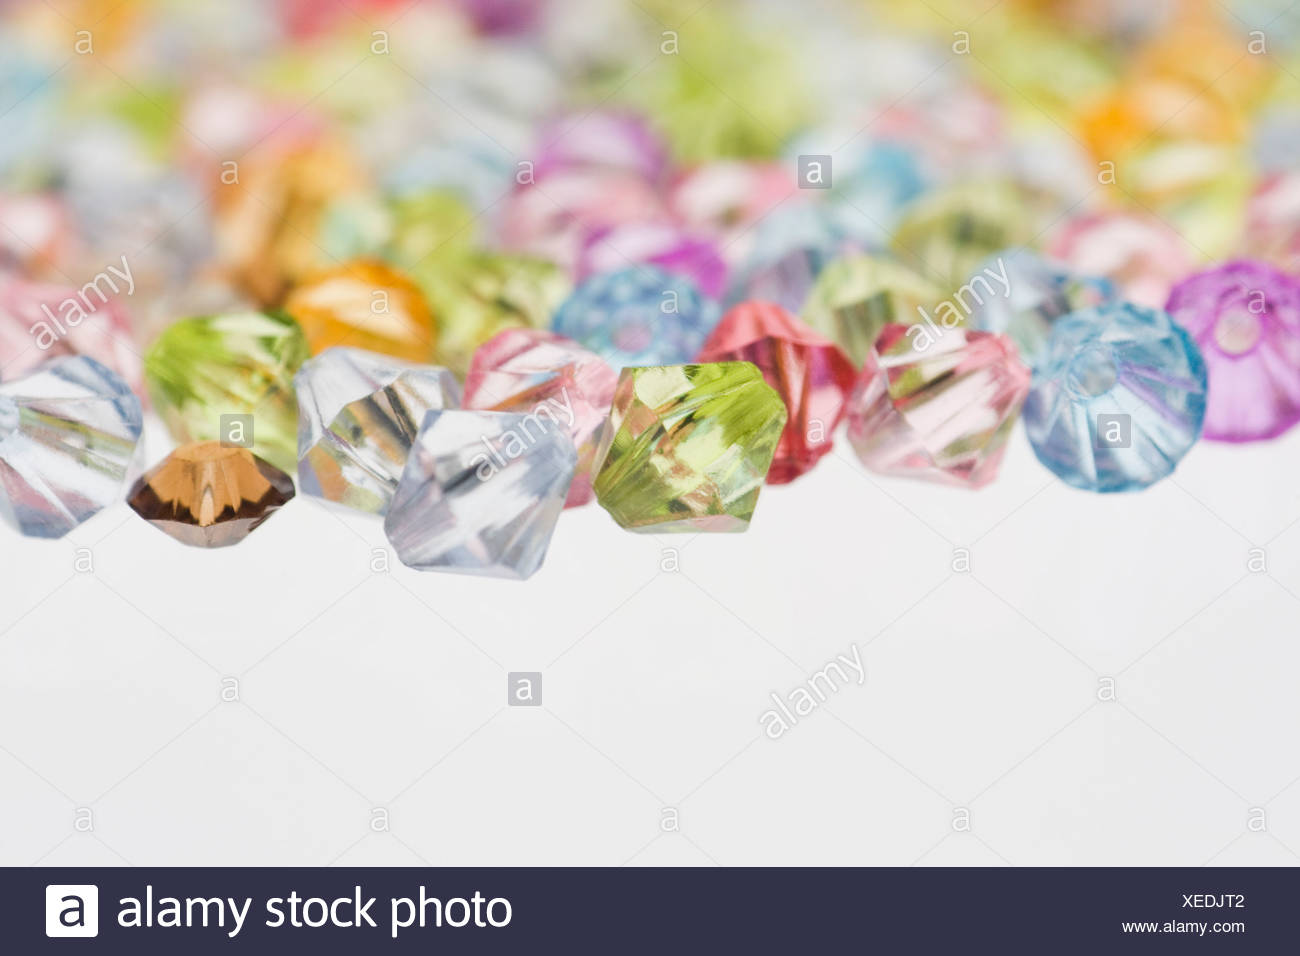 A selection of colorful beads, close-up - Stock Image